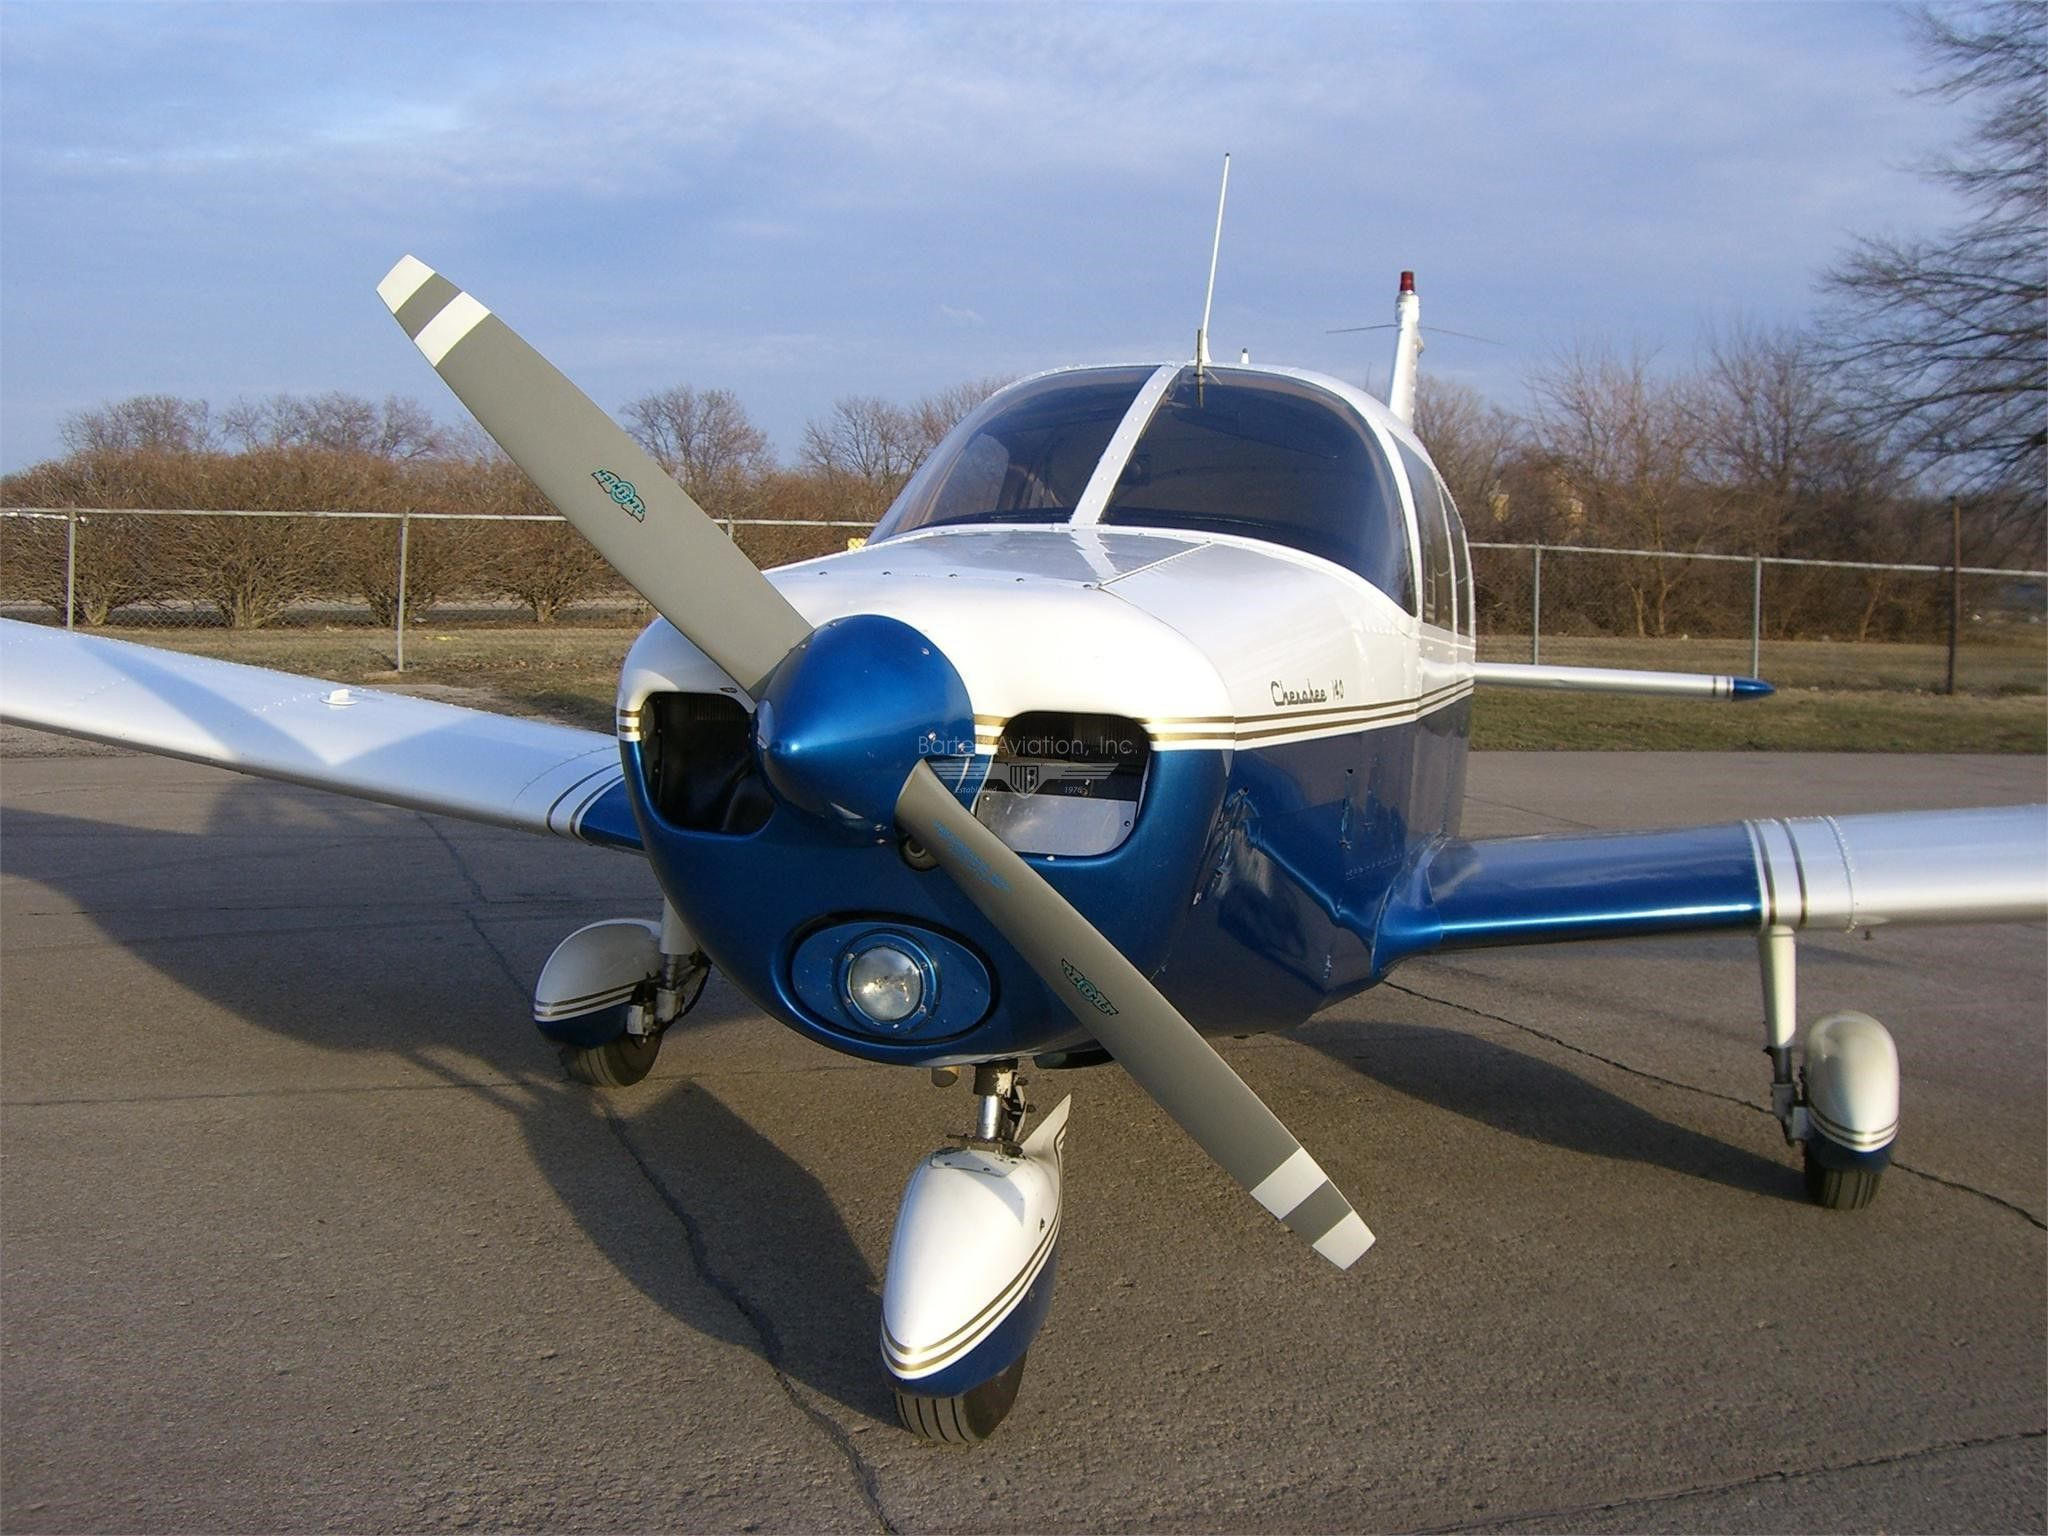 1967 Piper PA28140 (160) Cherokee 160 for sale Details